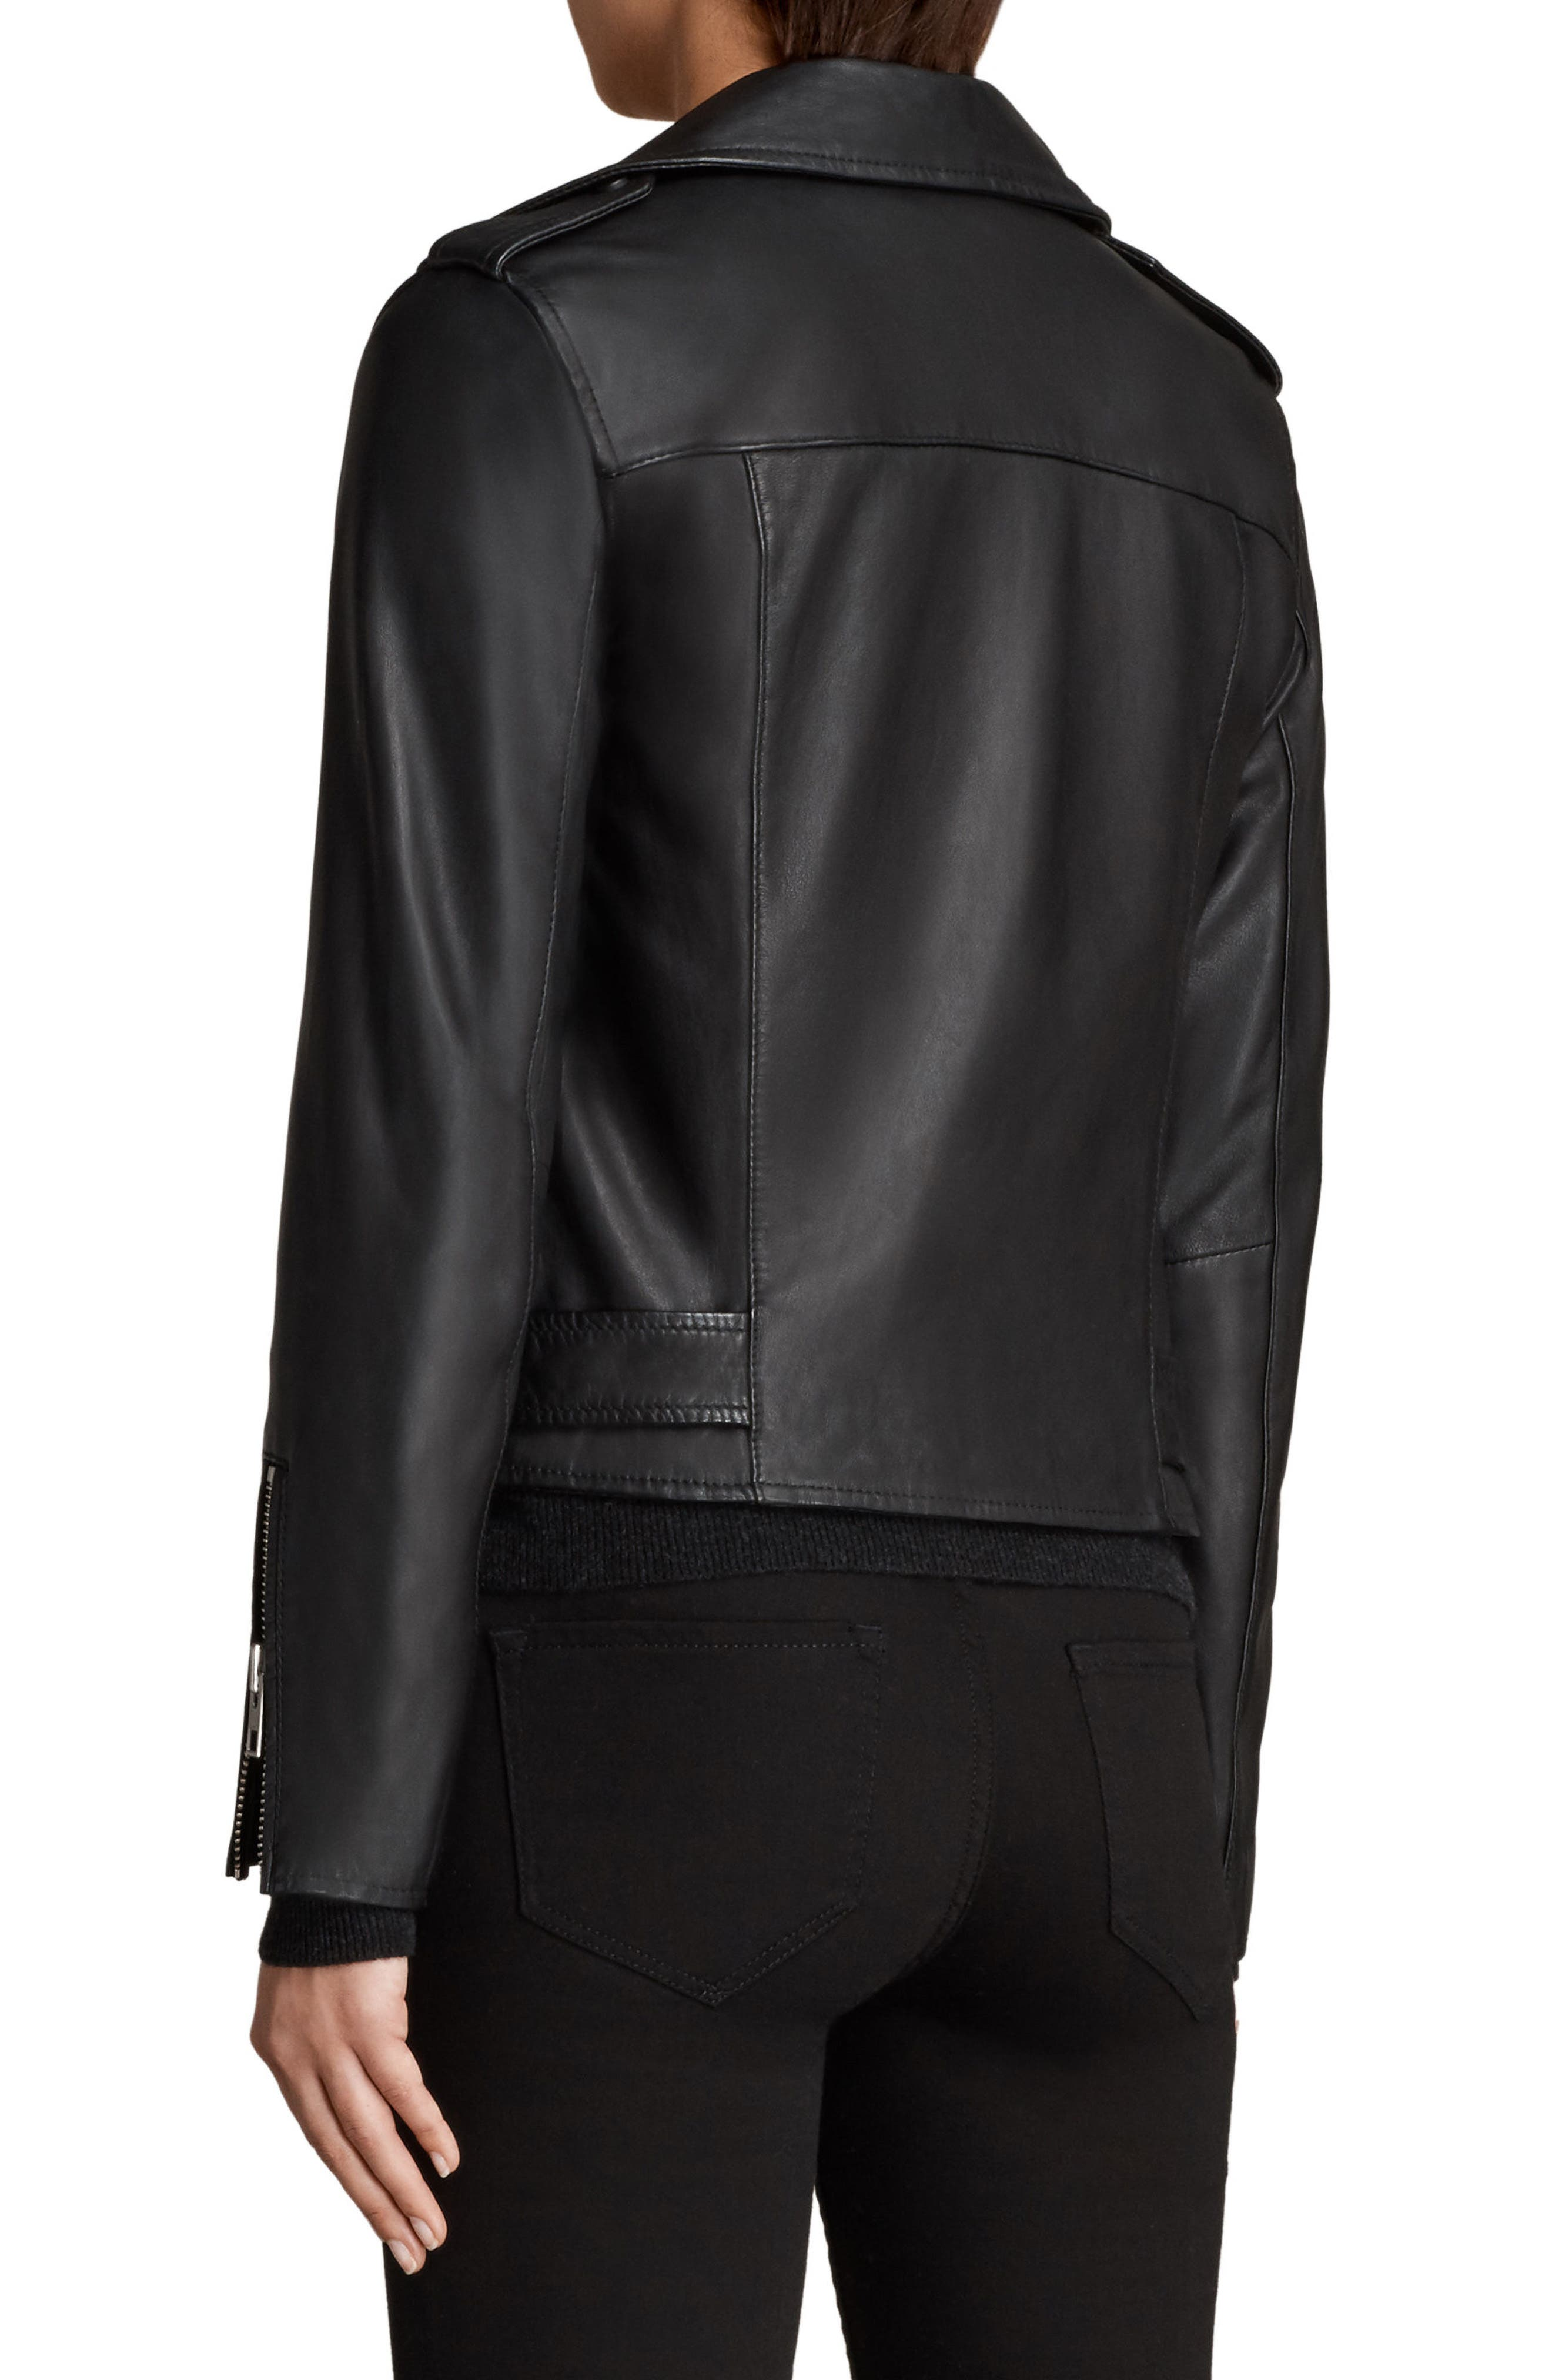 Balfern Leather Biker Jacket,                             Alternate thumbnail 2, color,                             Black